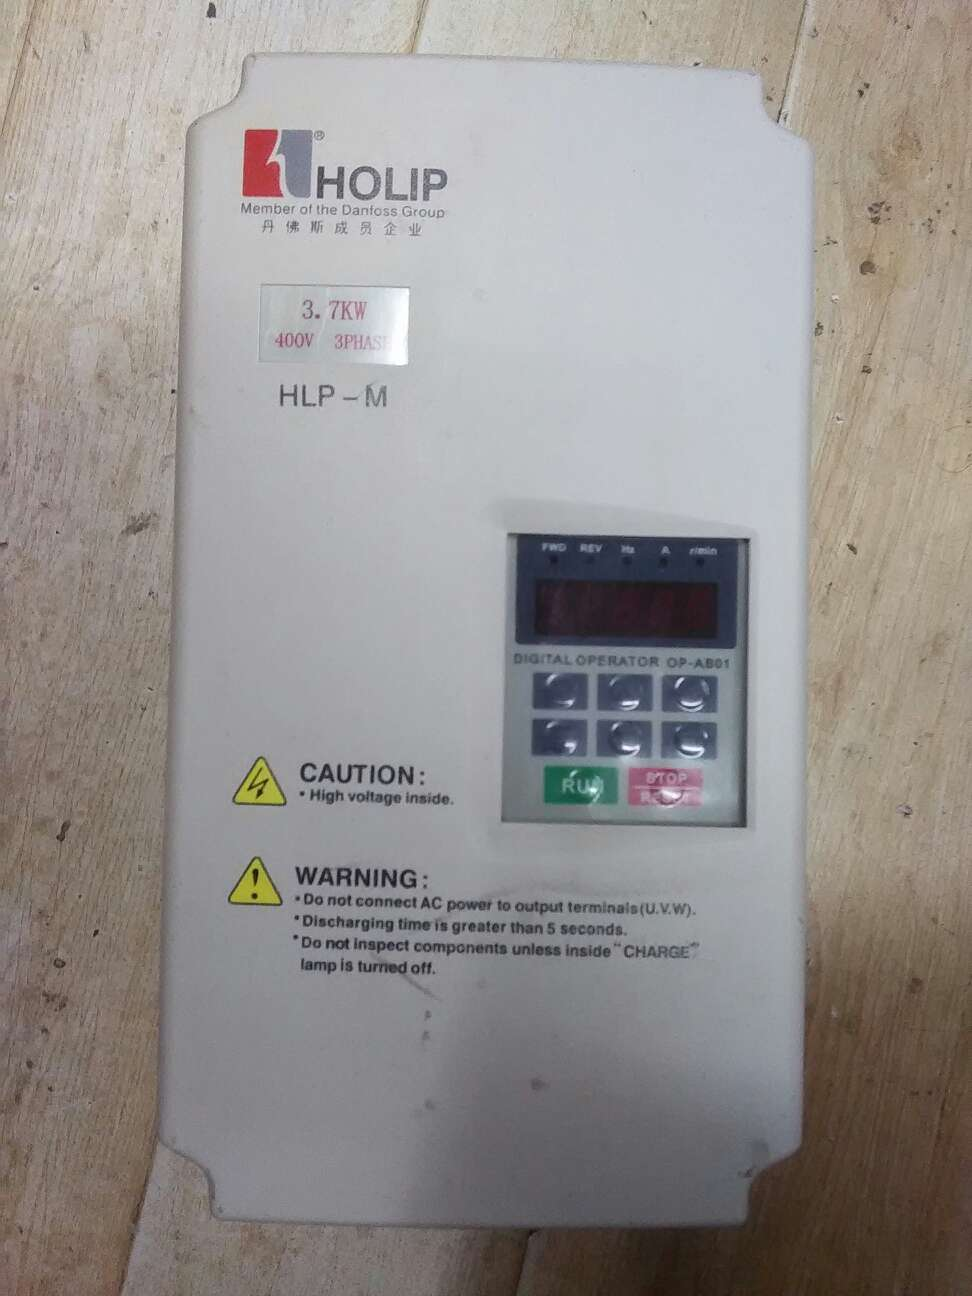 small resolution of vfd holip hlp m03d743b grinder inverter 3 7kw 4kw three phase motor speed controller 380v igbt in inverters converters from home improvement on